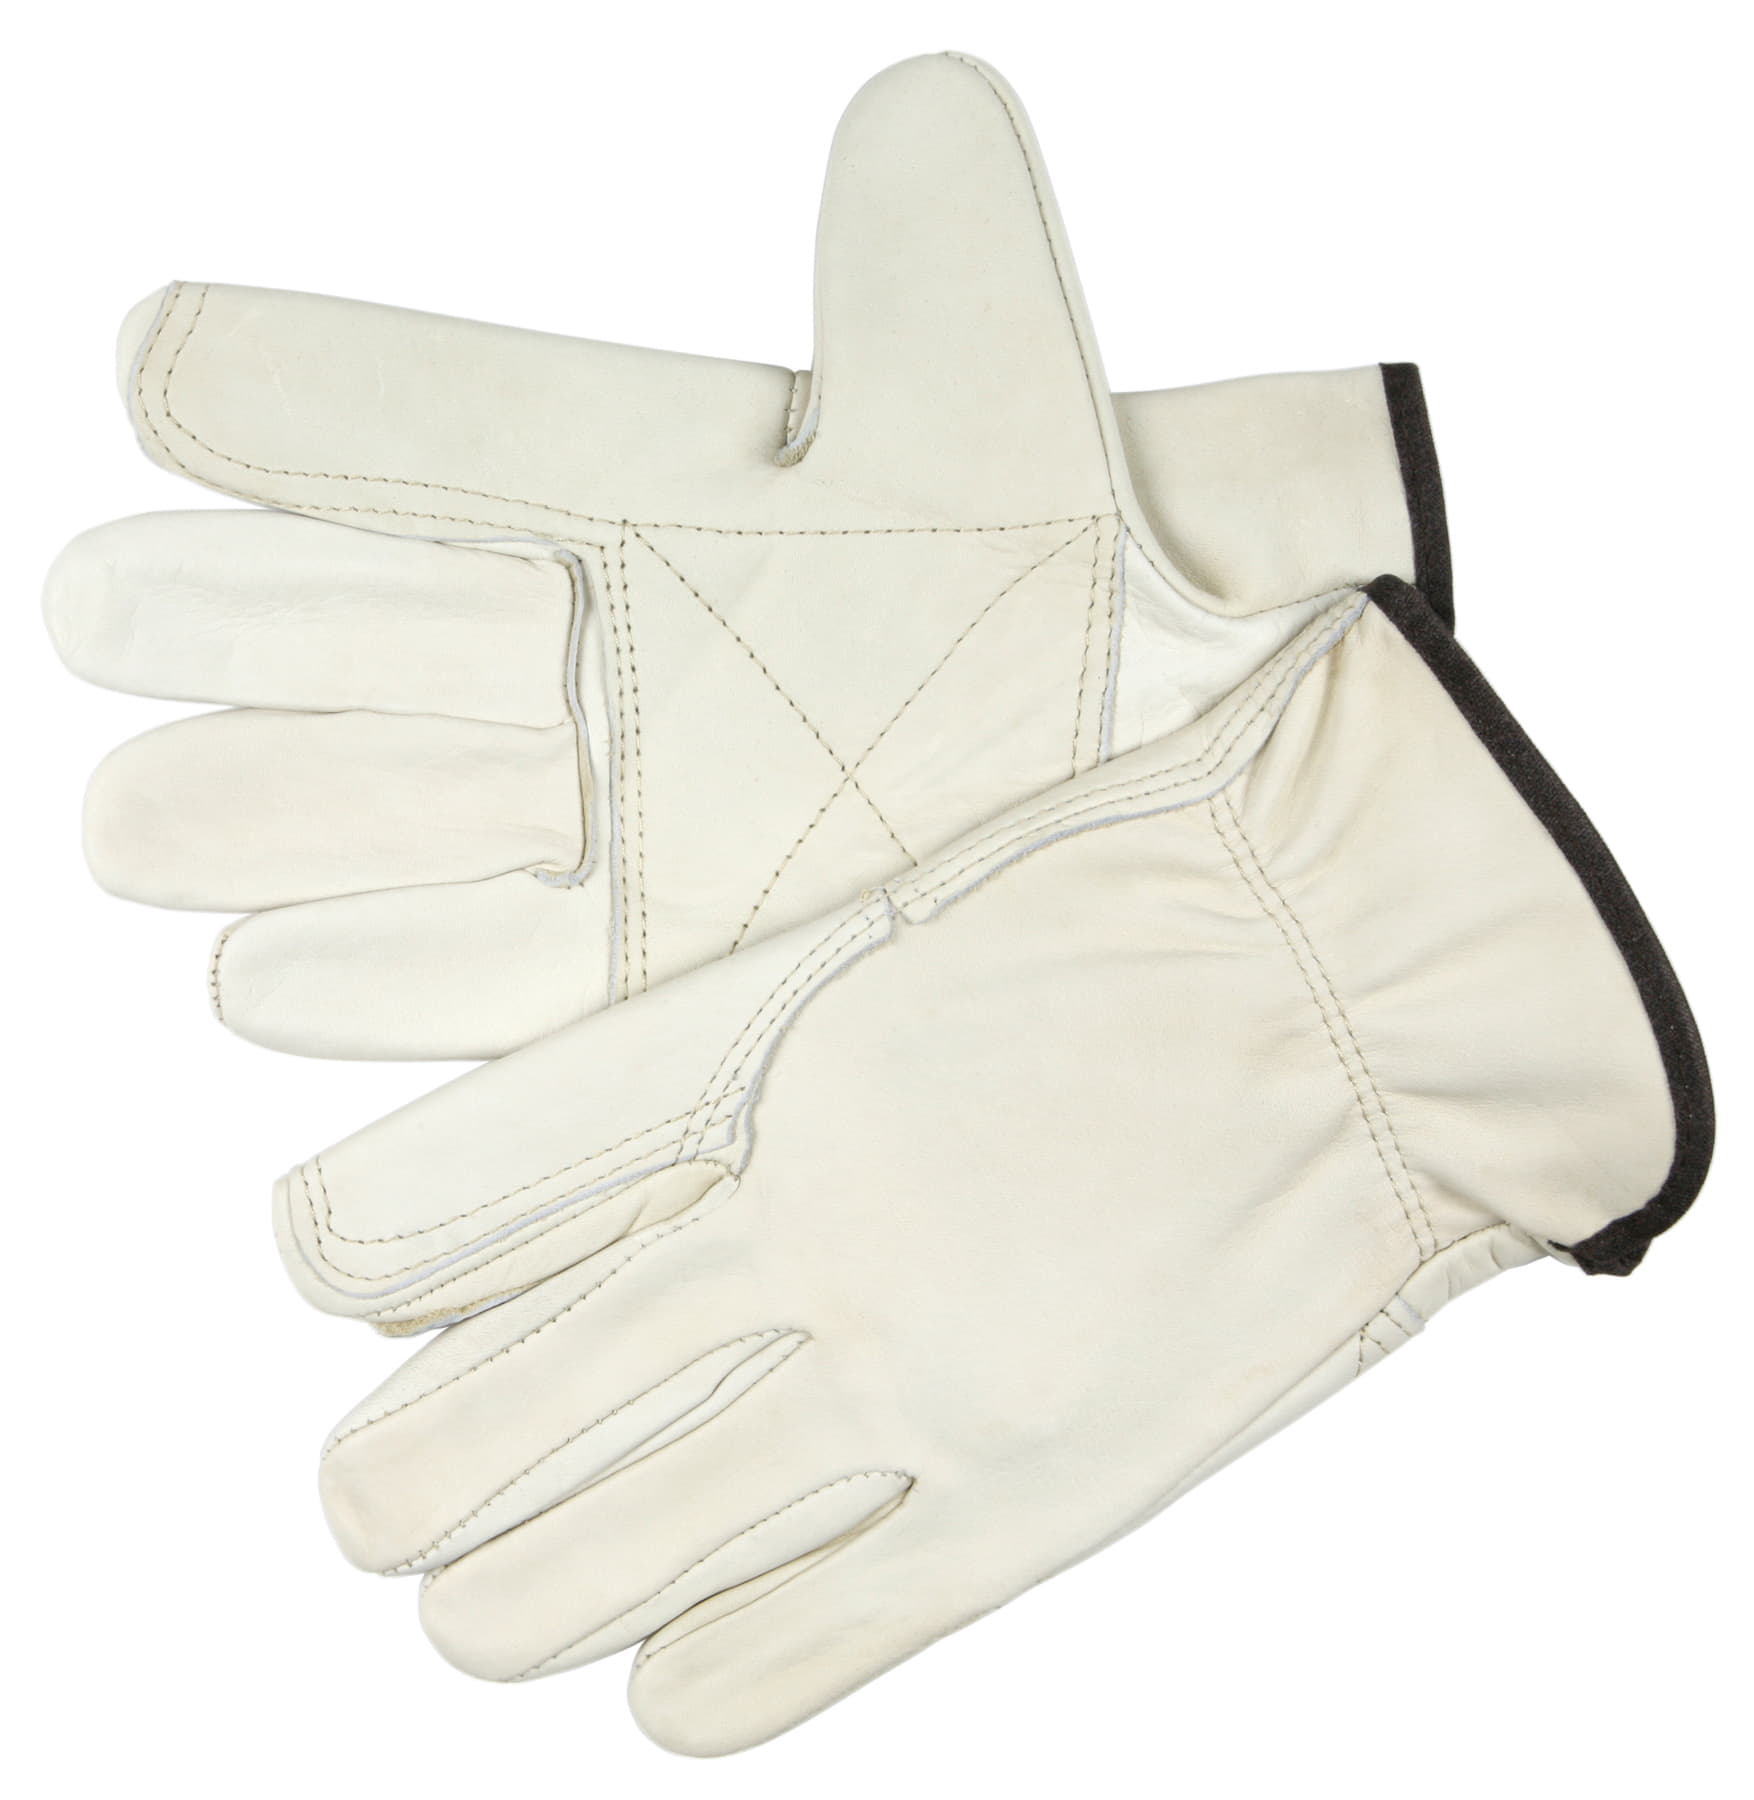 MCR Safety 32113DP Cowhide Leather with Double Palm glove